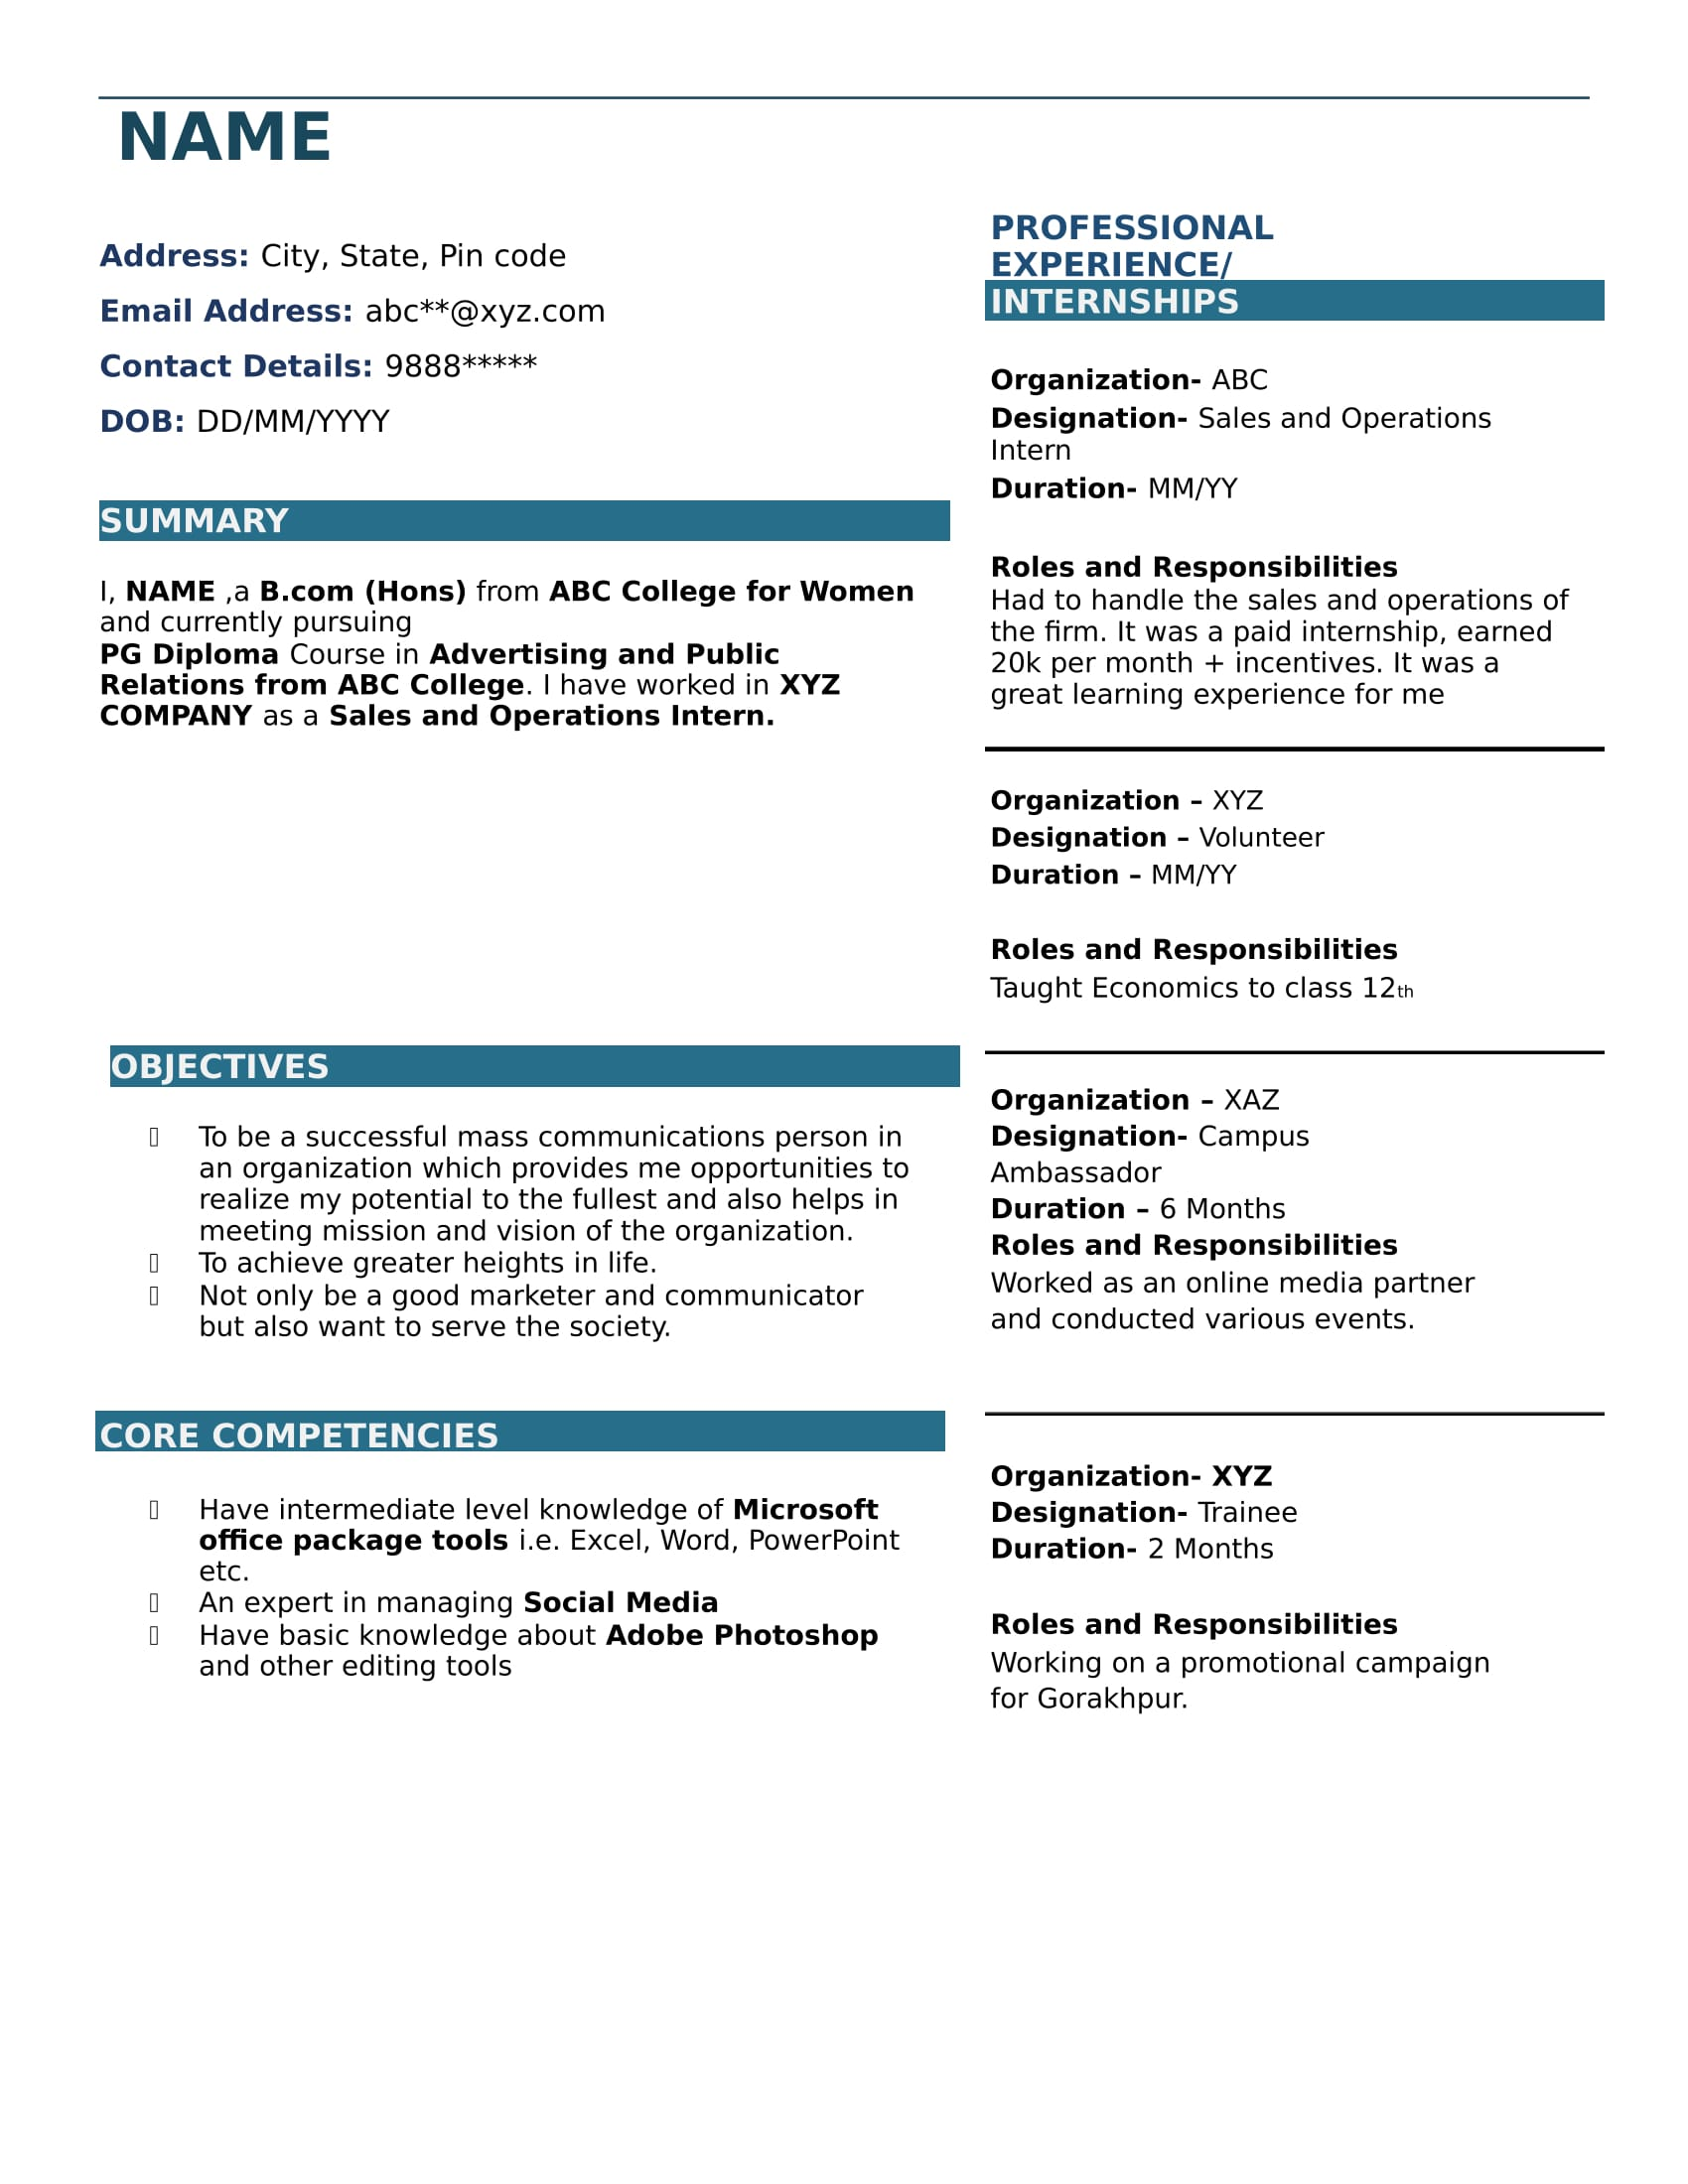 bcom student resume format pdf best examples standard for freshers upgrade your sjsu Resume Standard Resume Format For Freshers